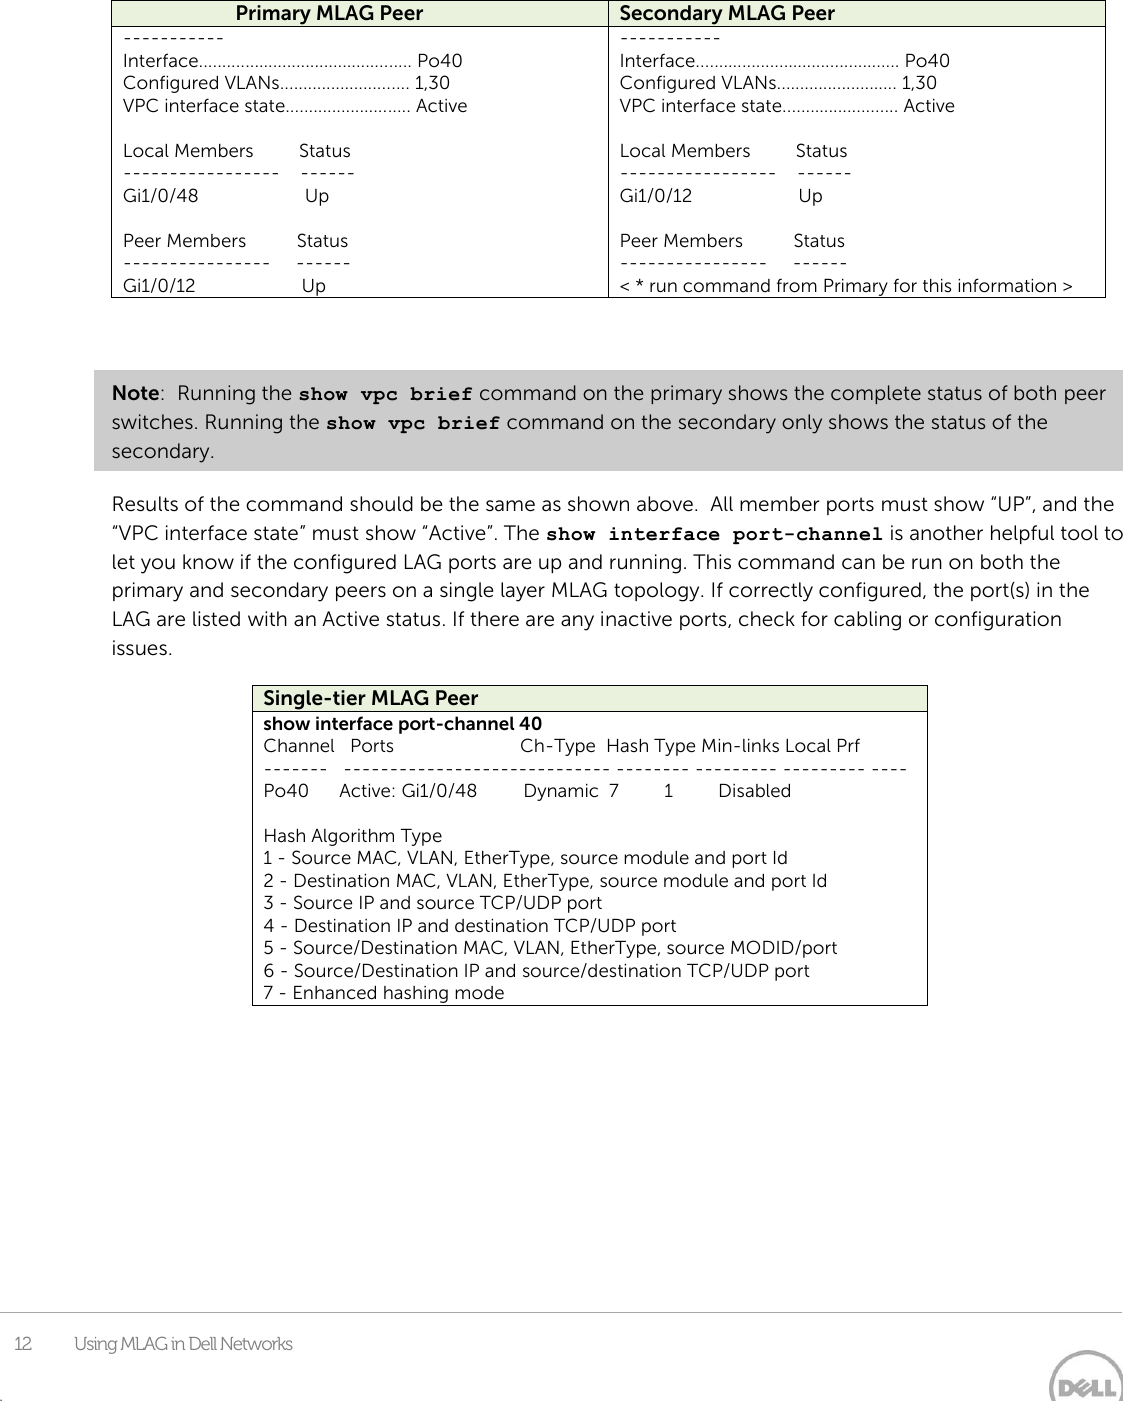 Dell N3024 Using MLAG In Networks User Manual To The